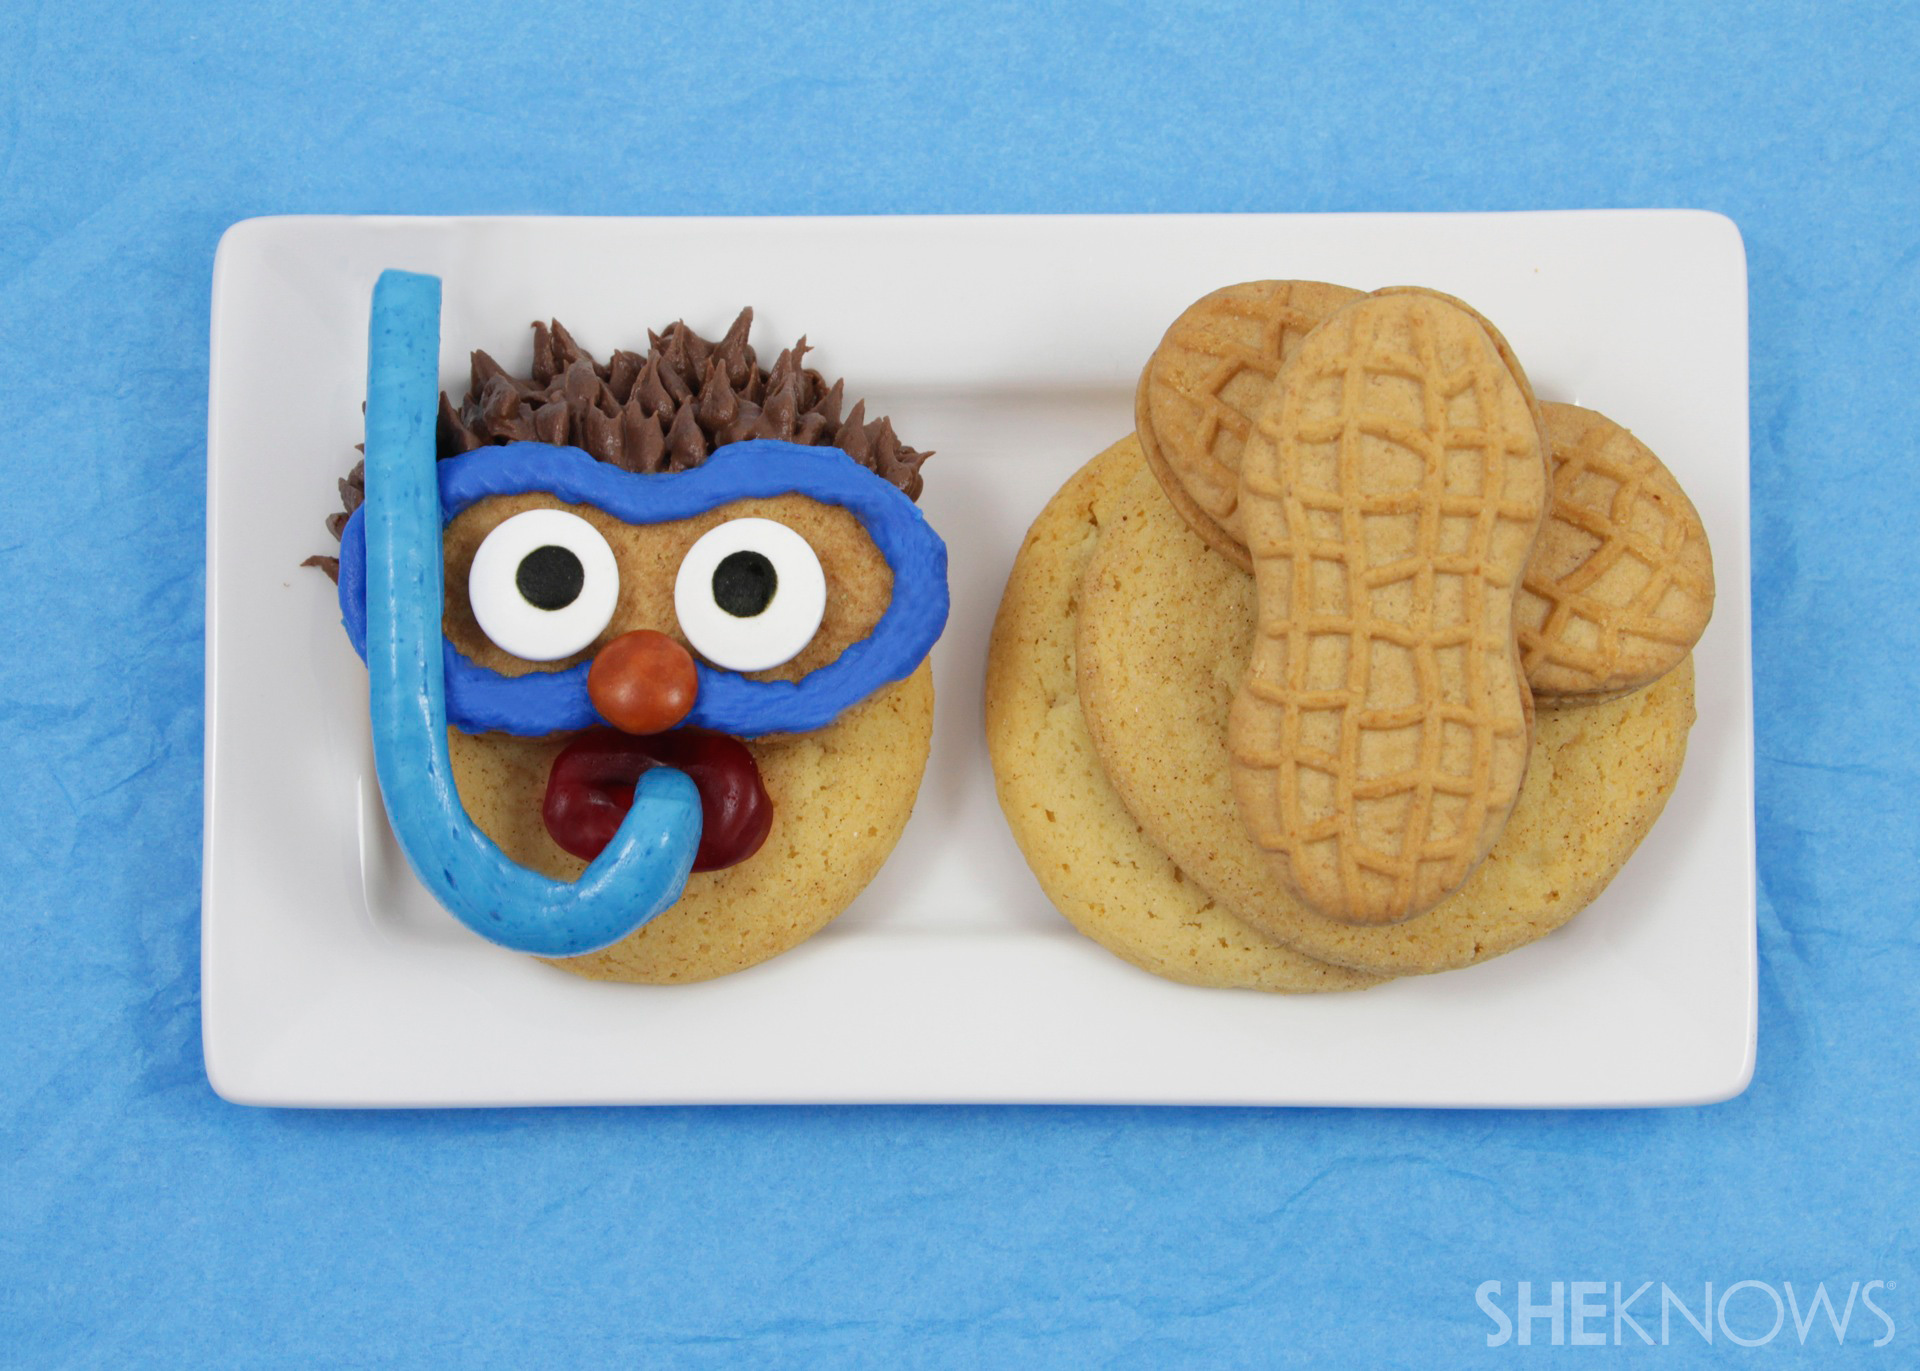 Easy-to-make, no-bake snorkeler cookies are the cutest treats you'll eat this summer